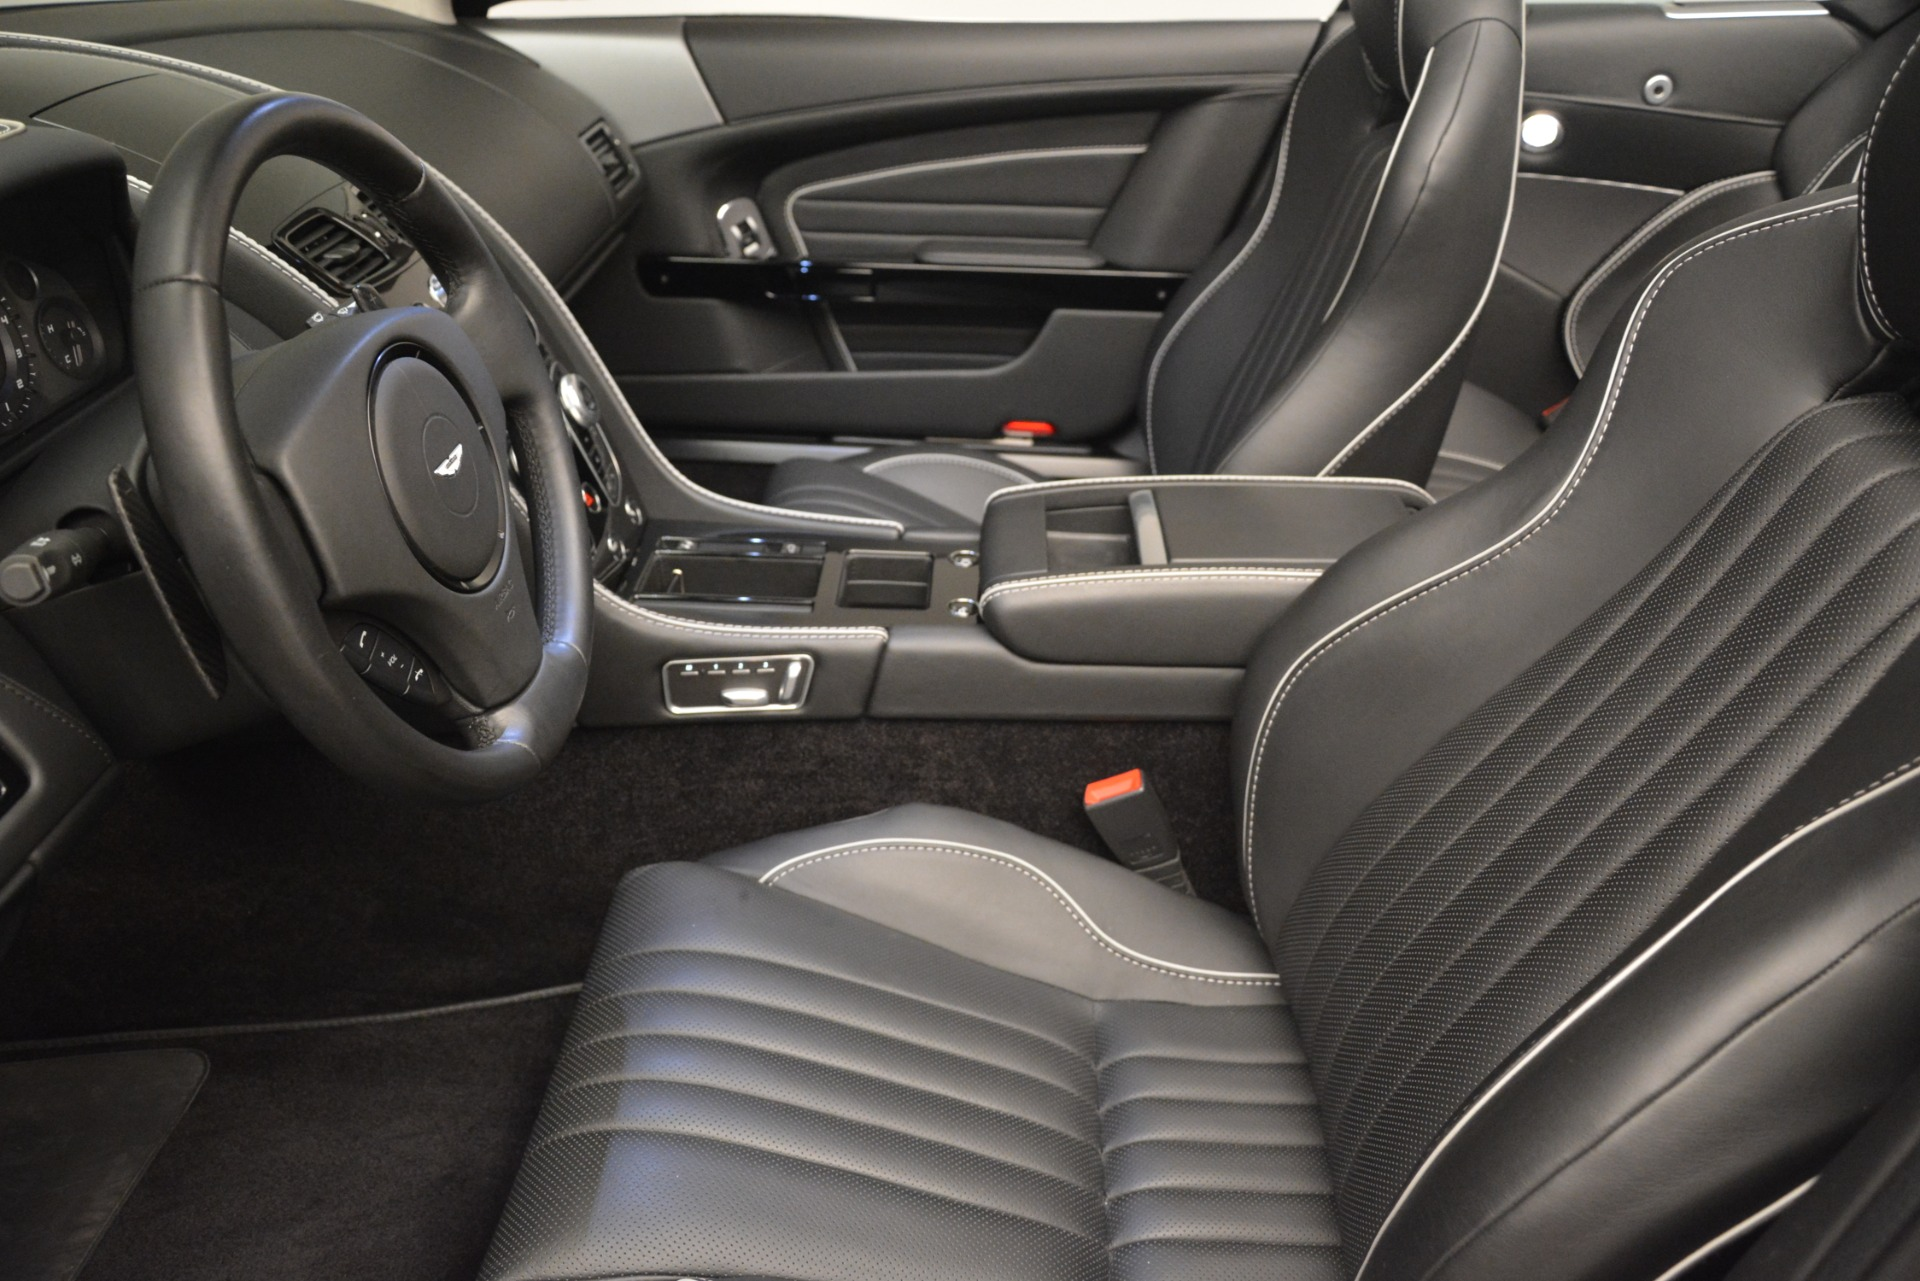 Used 2016 Aston Martin DB9 Convertible For Sale In Greenwich, CT 2971_p15